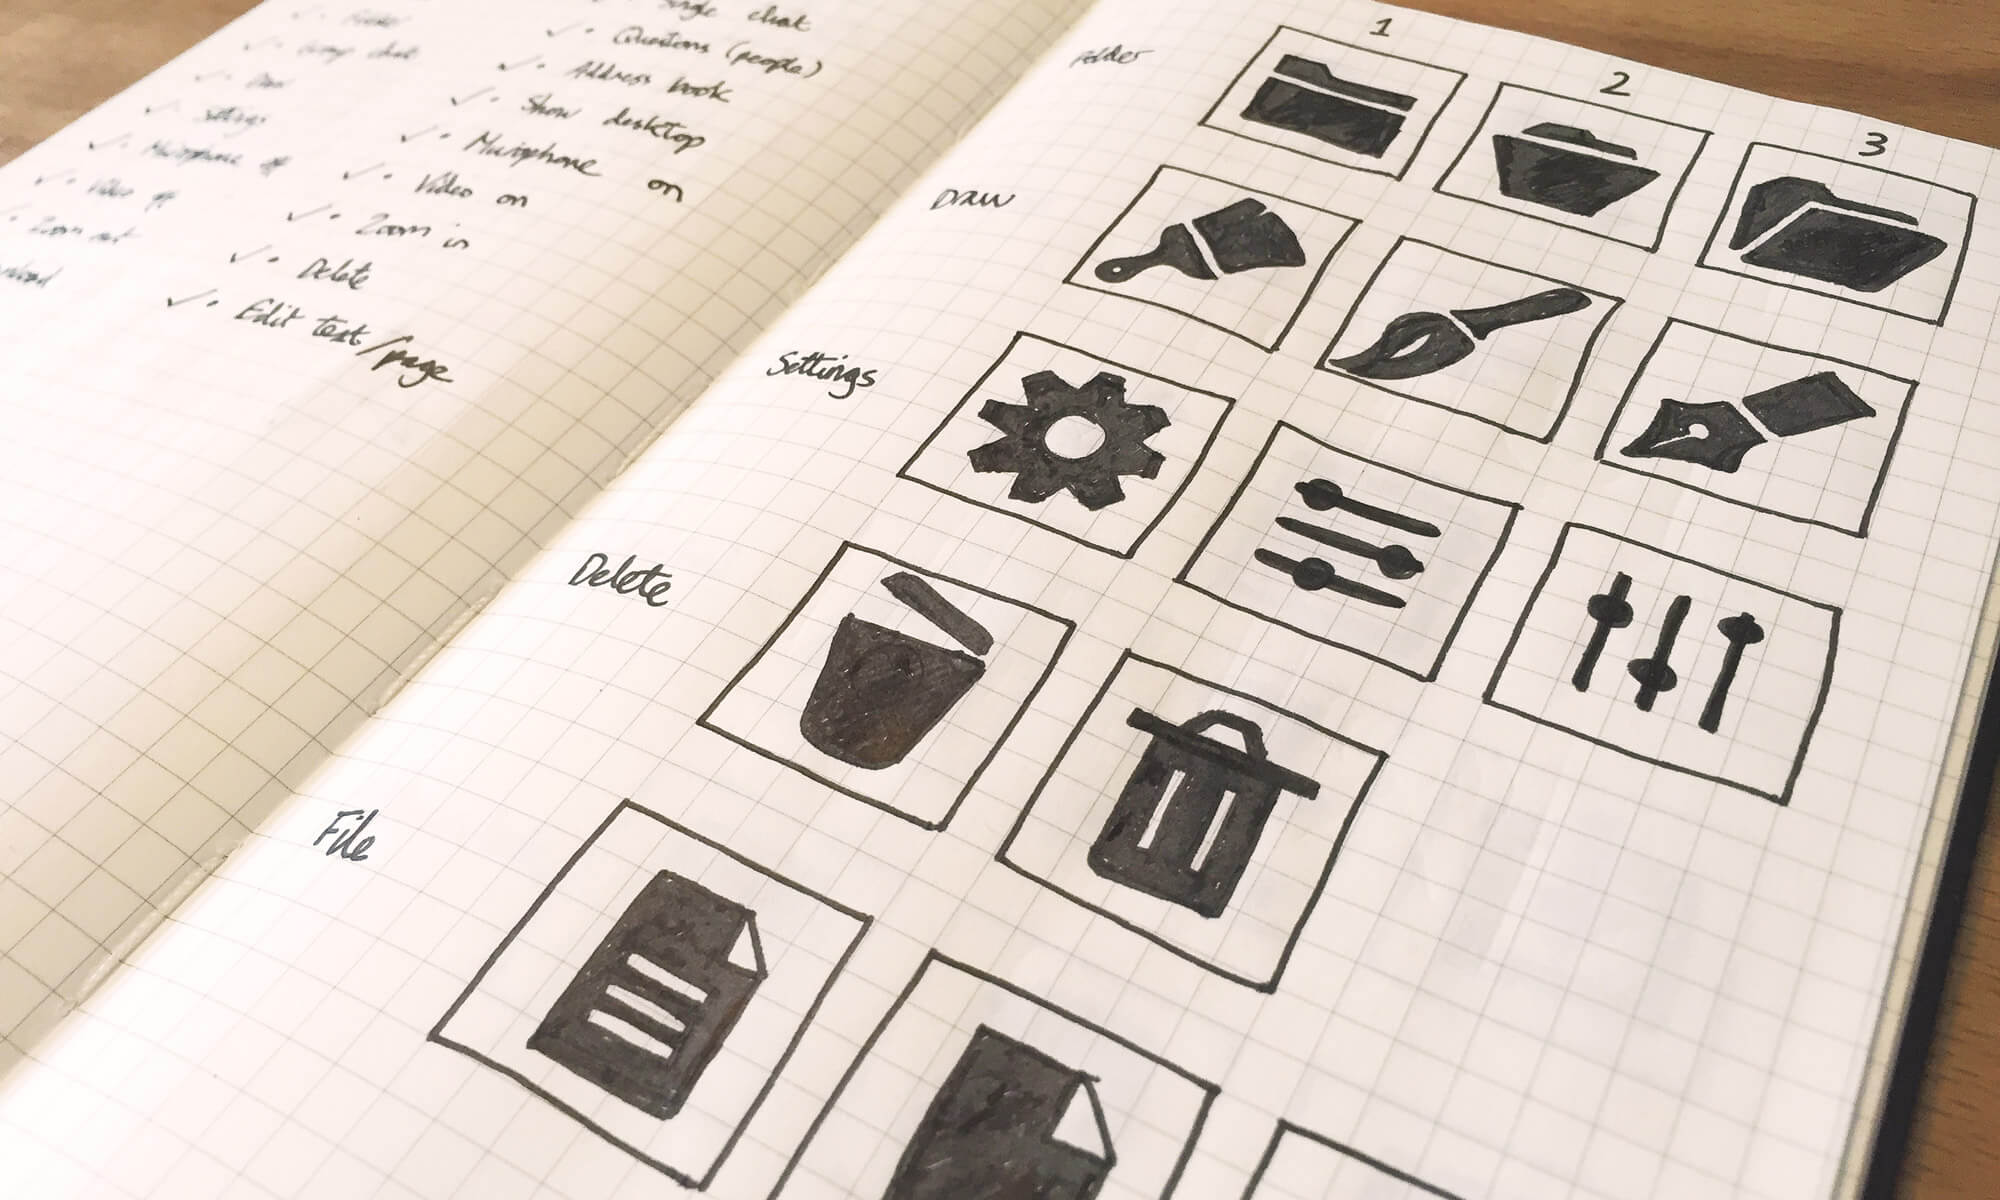 Sketching out a few options for each icon.